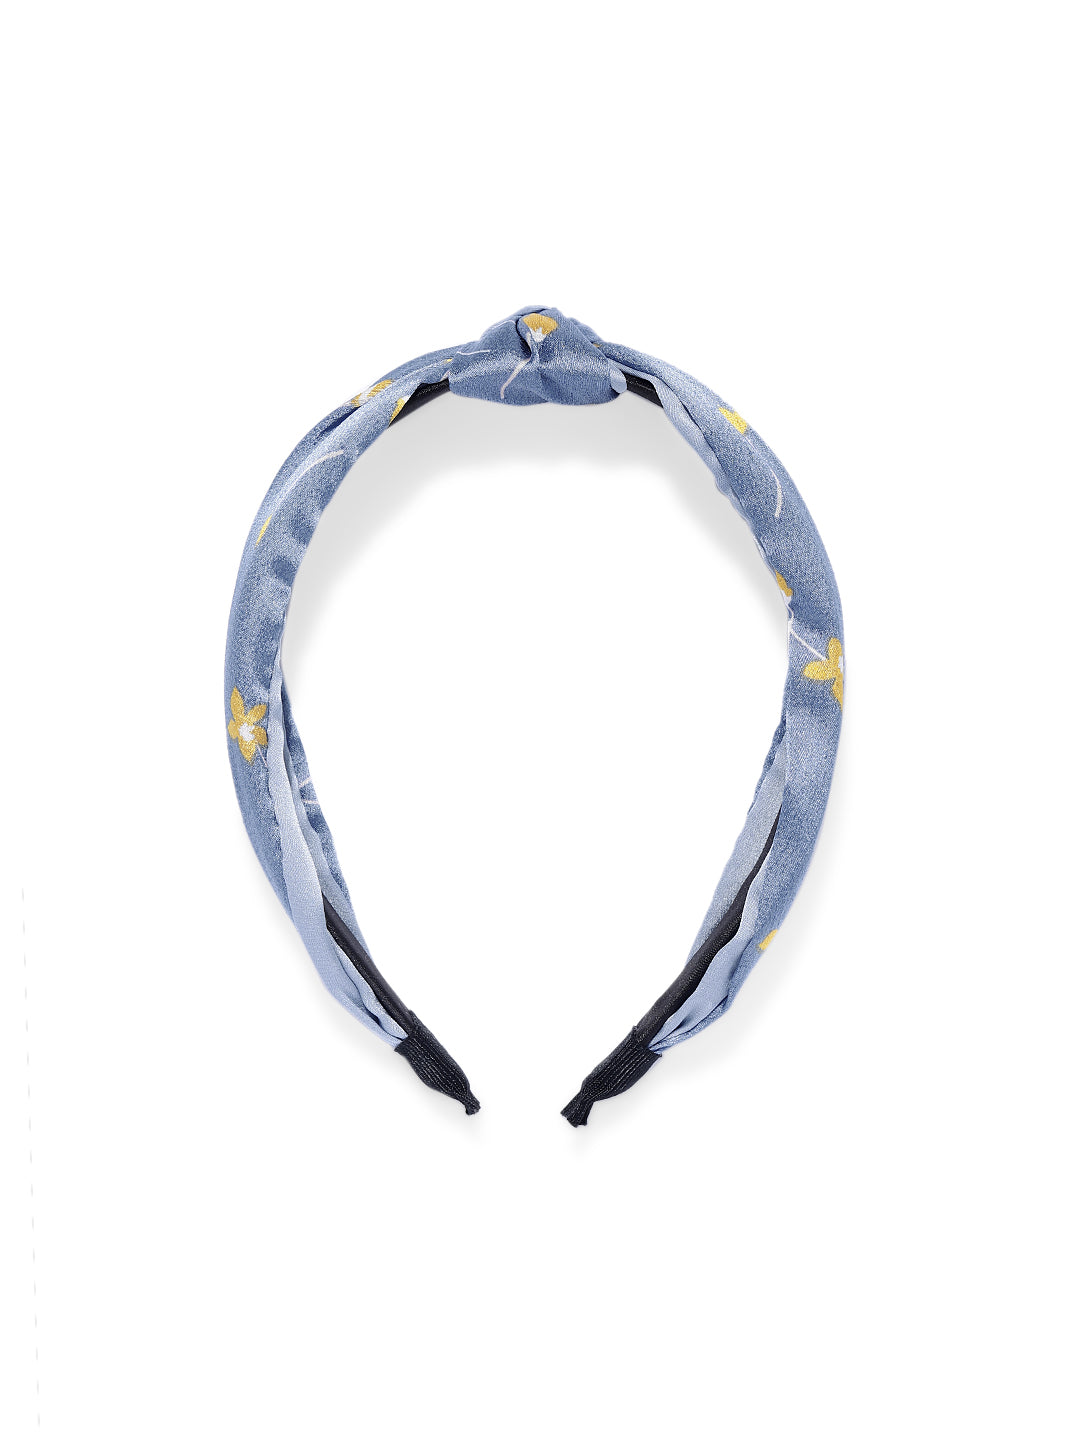 Vegan Handmade Knotted Hairband in Sky Blue - ChicMela